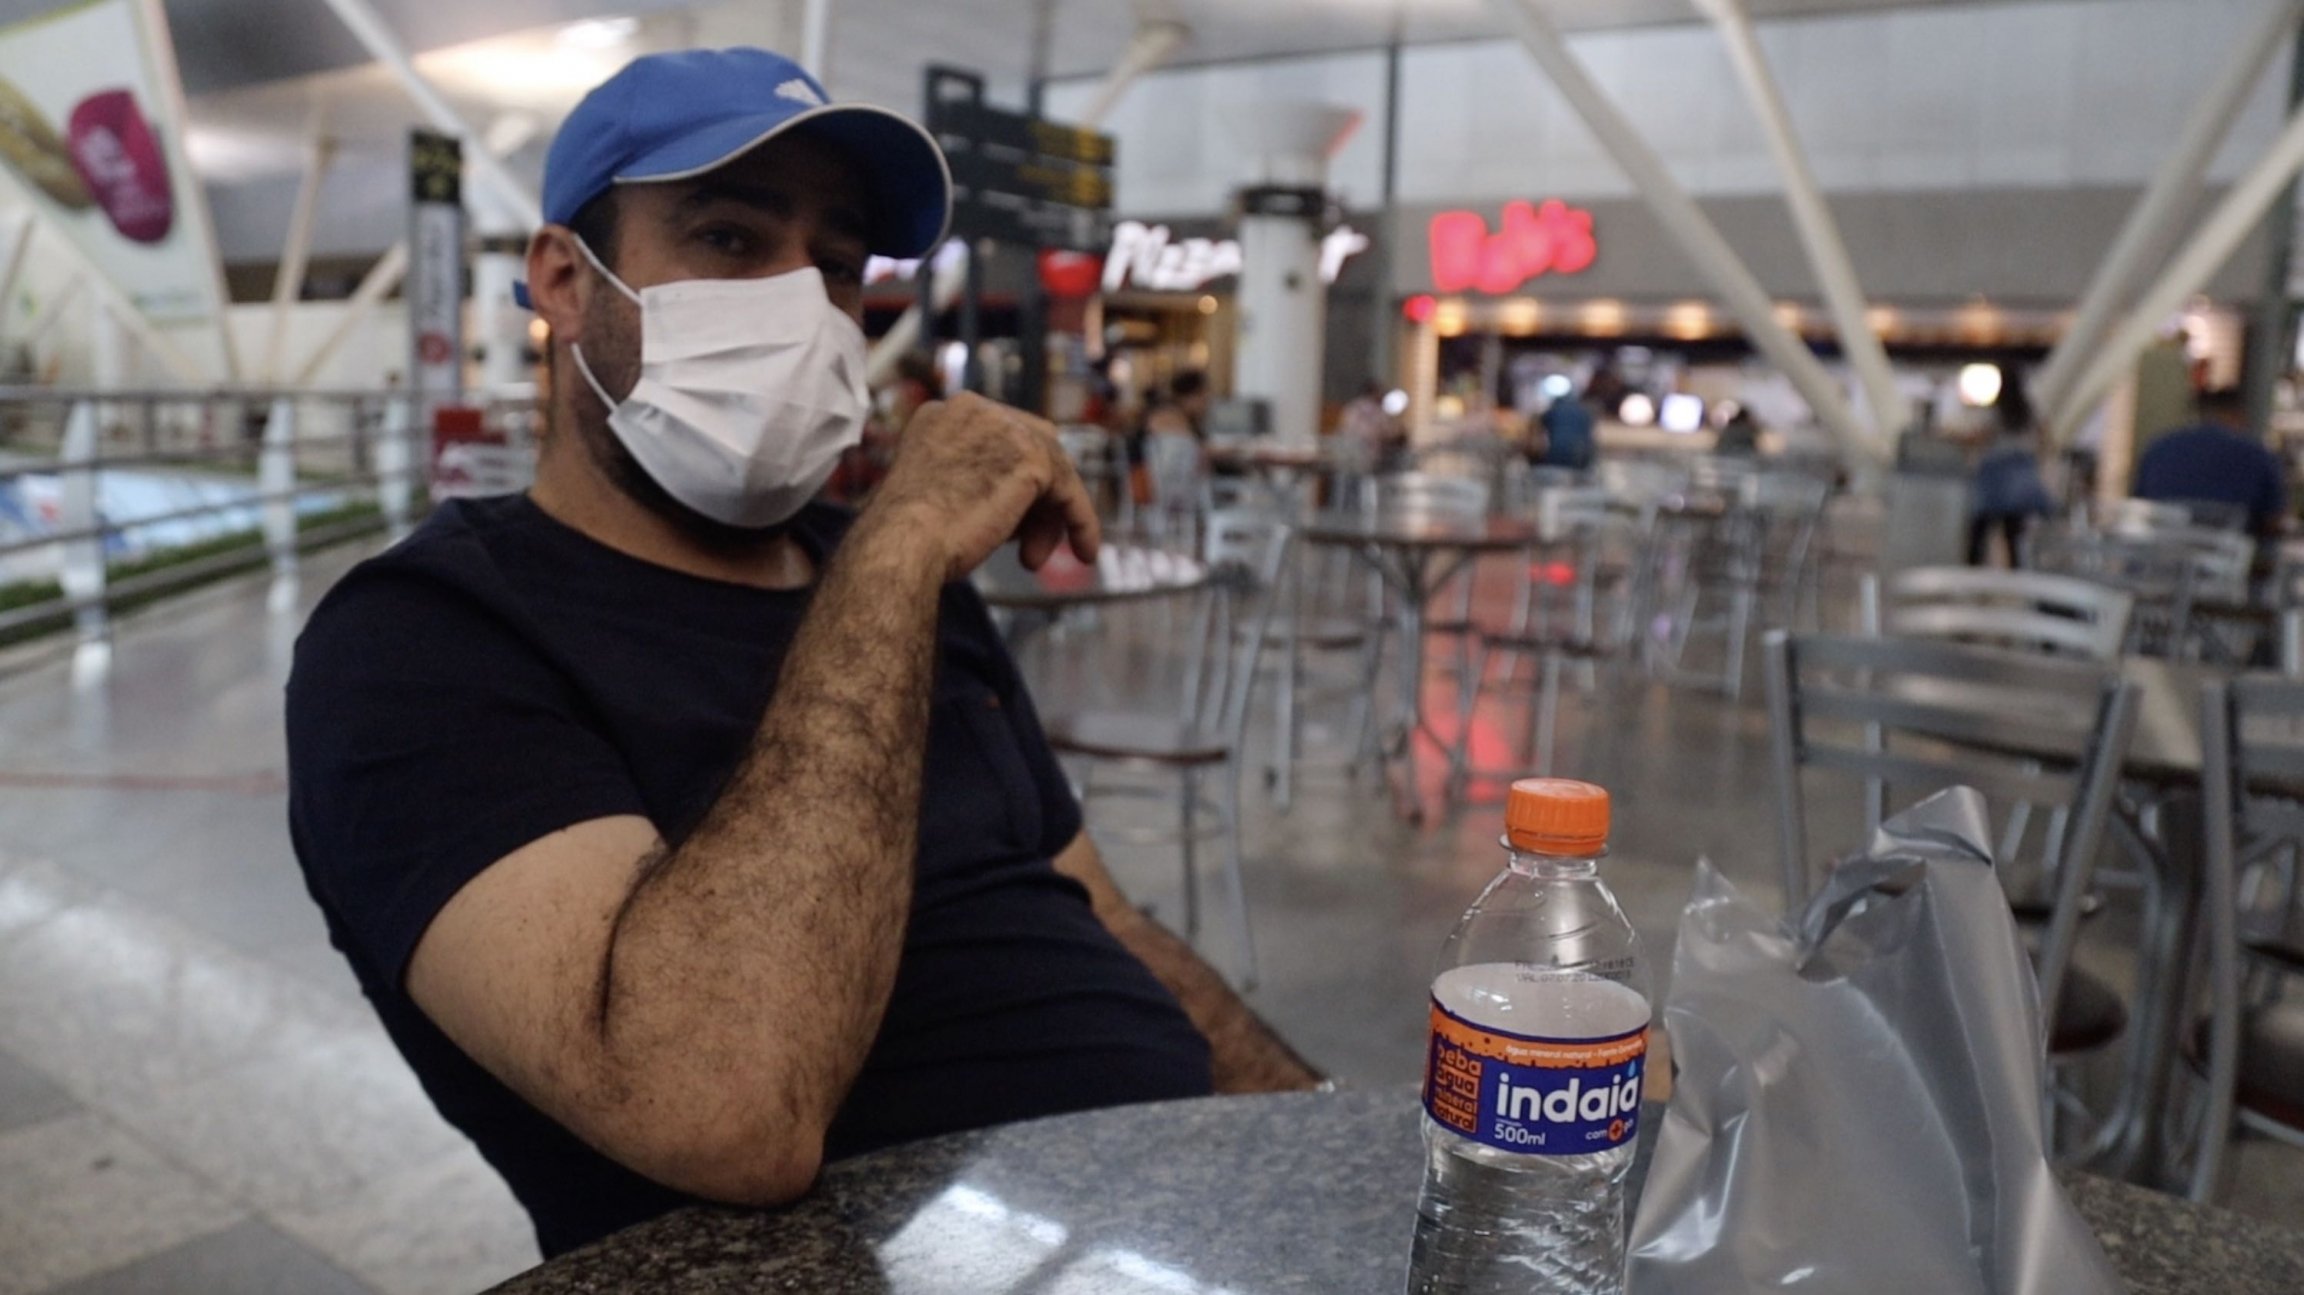 Fernando Guedes, a mechanical technician, recently passedthroughthe Val de Cans International Airport in northern Brazil.He's concerned about returning home toSão Paulo, which has been hard hit by the coronavirus.